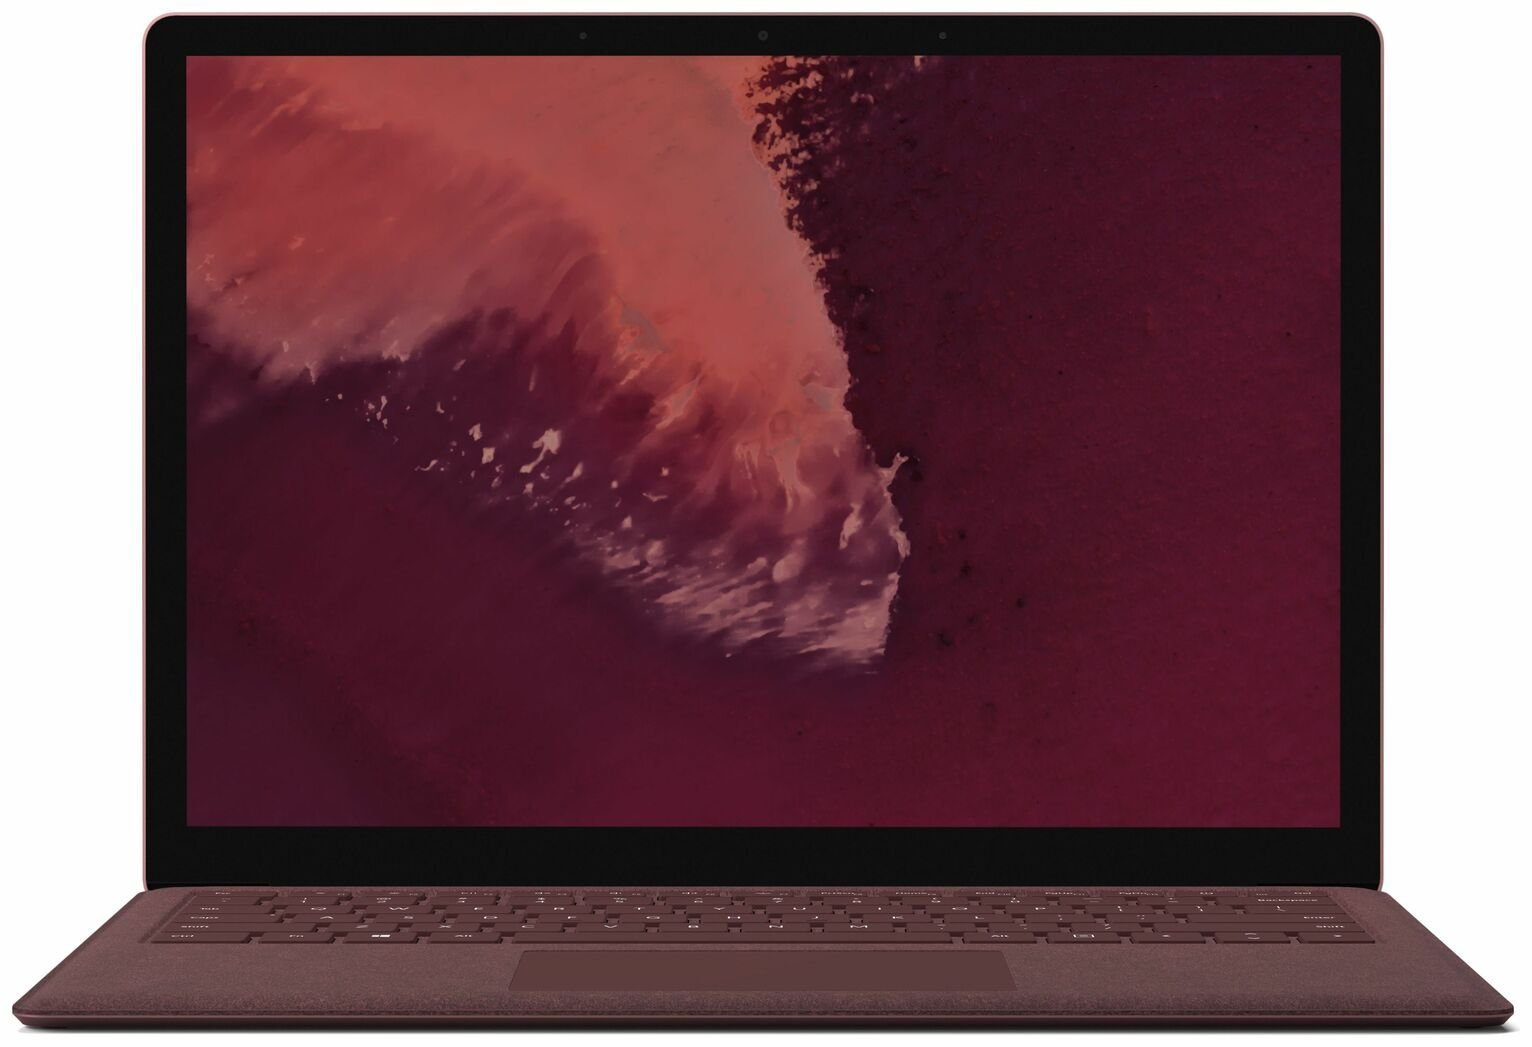 Microsoft Surface Laptop 2 13.5 inch i5 8GB 256GB - Burgundy